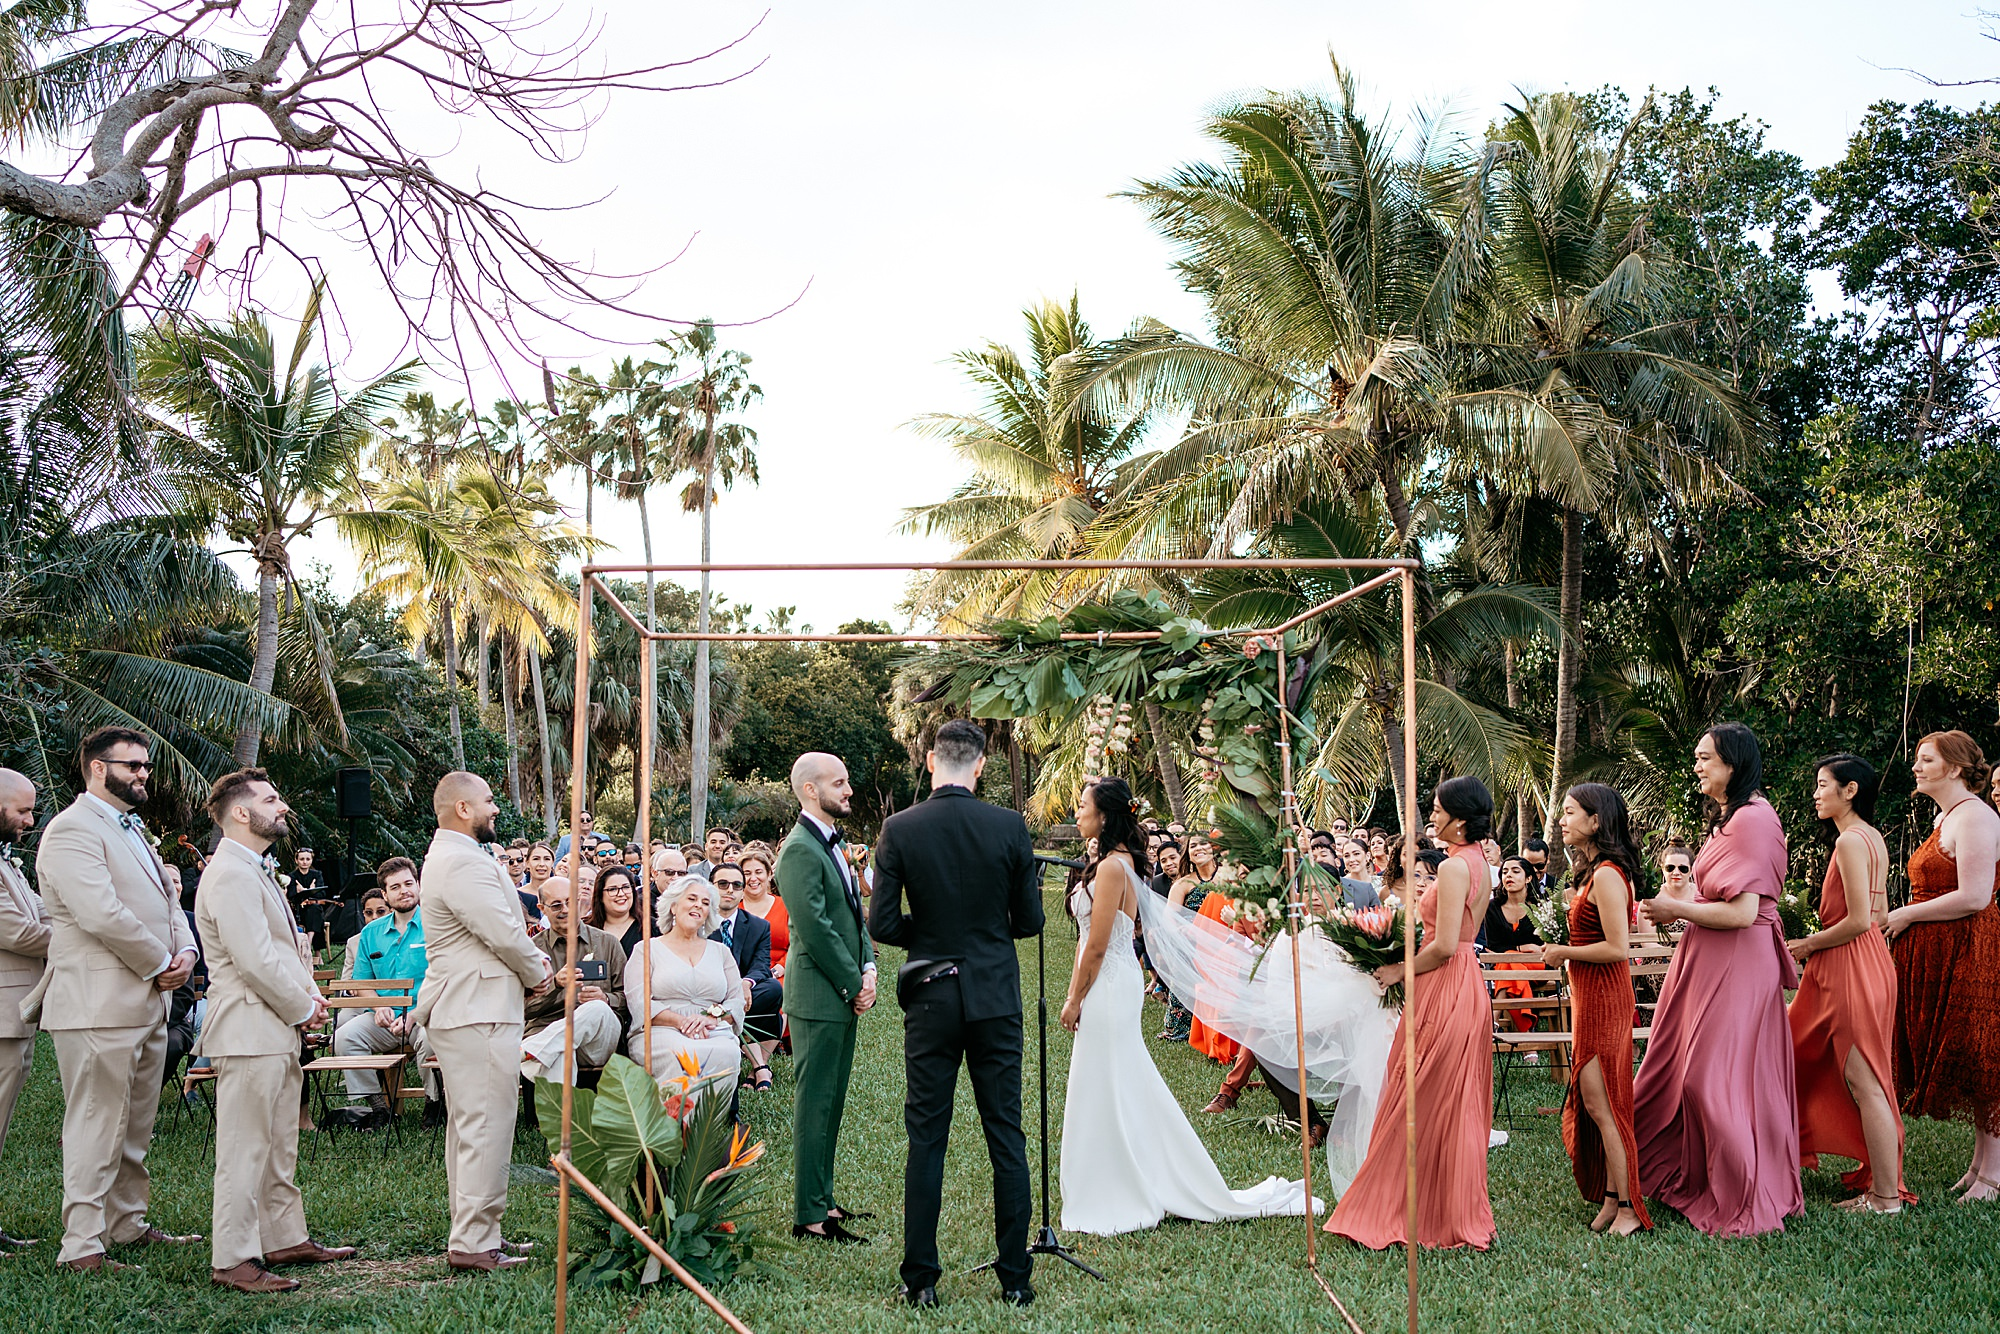 natural wedding photography miami the kampong 0455 1